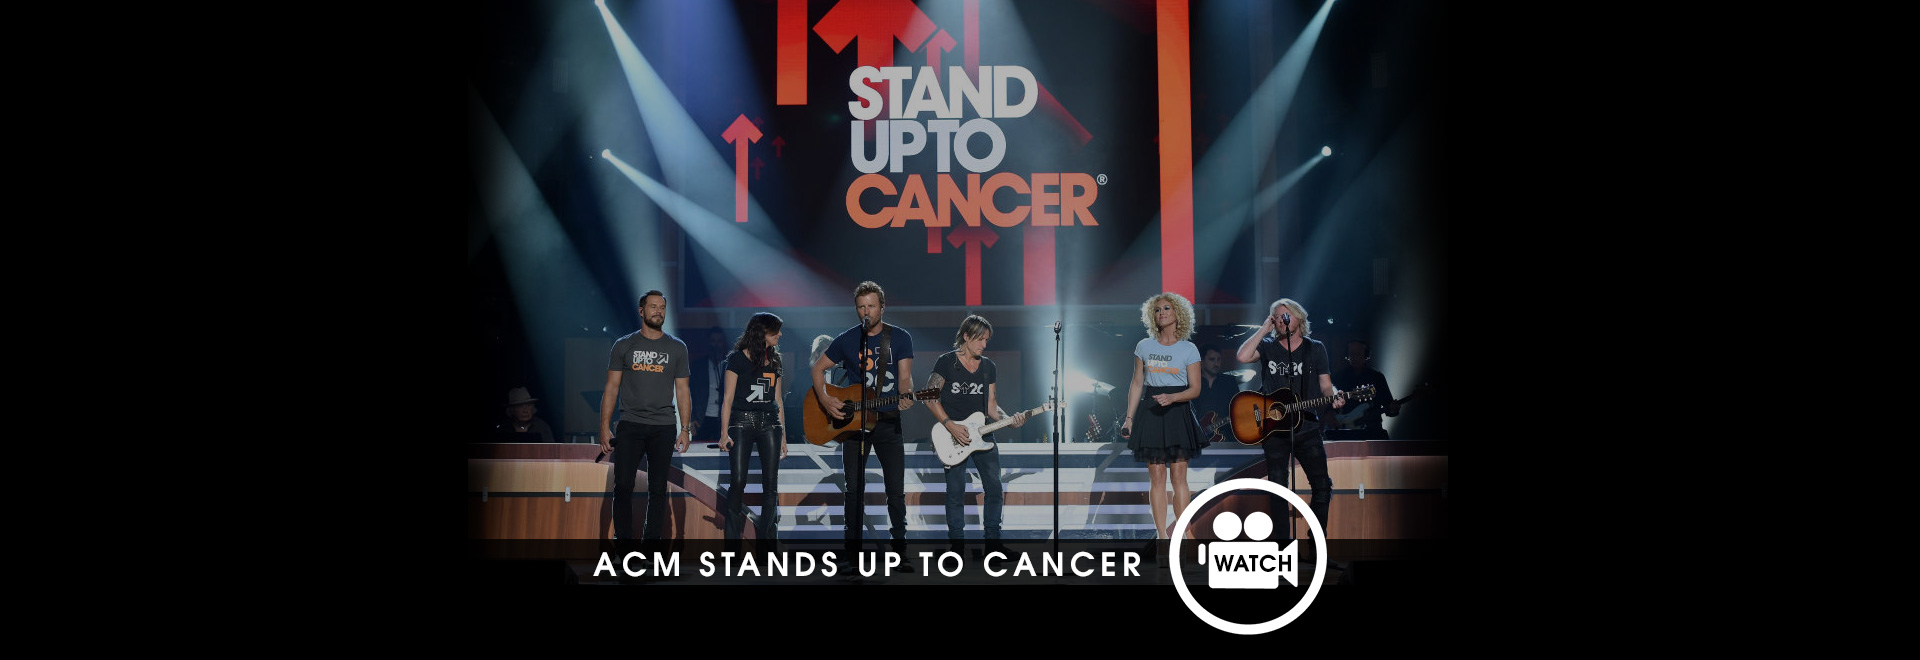 ACM Lifting Lives Stands Up To Cancer